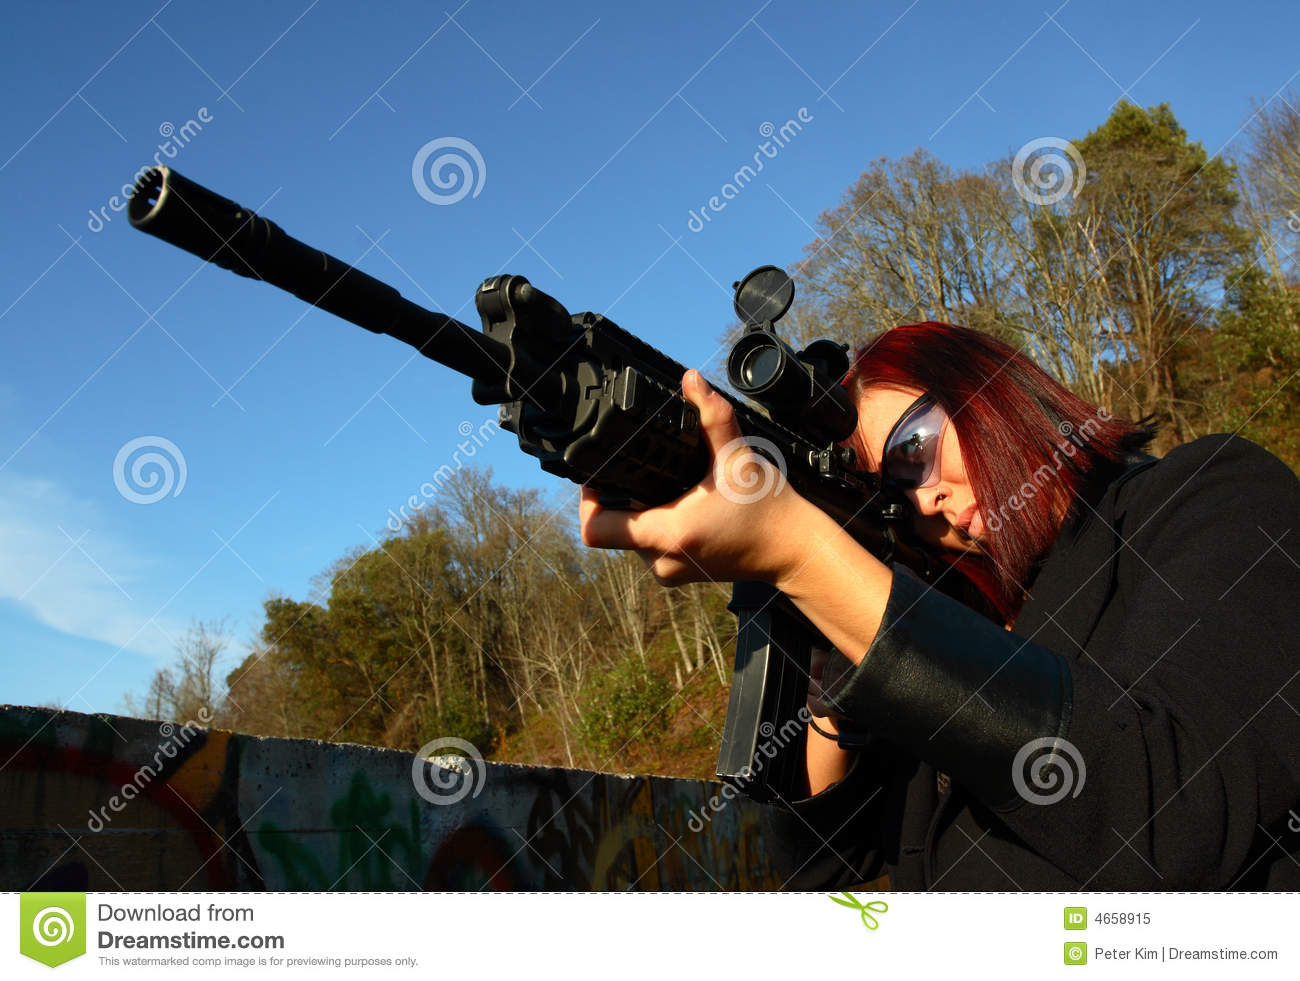 Us marine corps soldier holding m4 assault rifle over brown background - Young Woman Aiming Assault Rifle Stock Photo